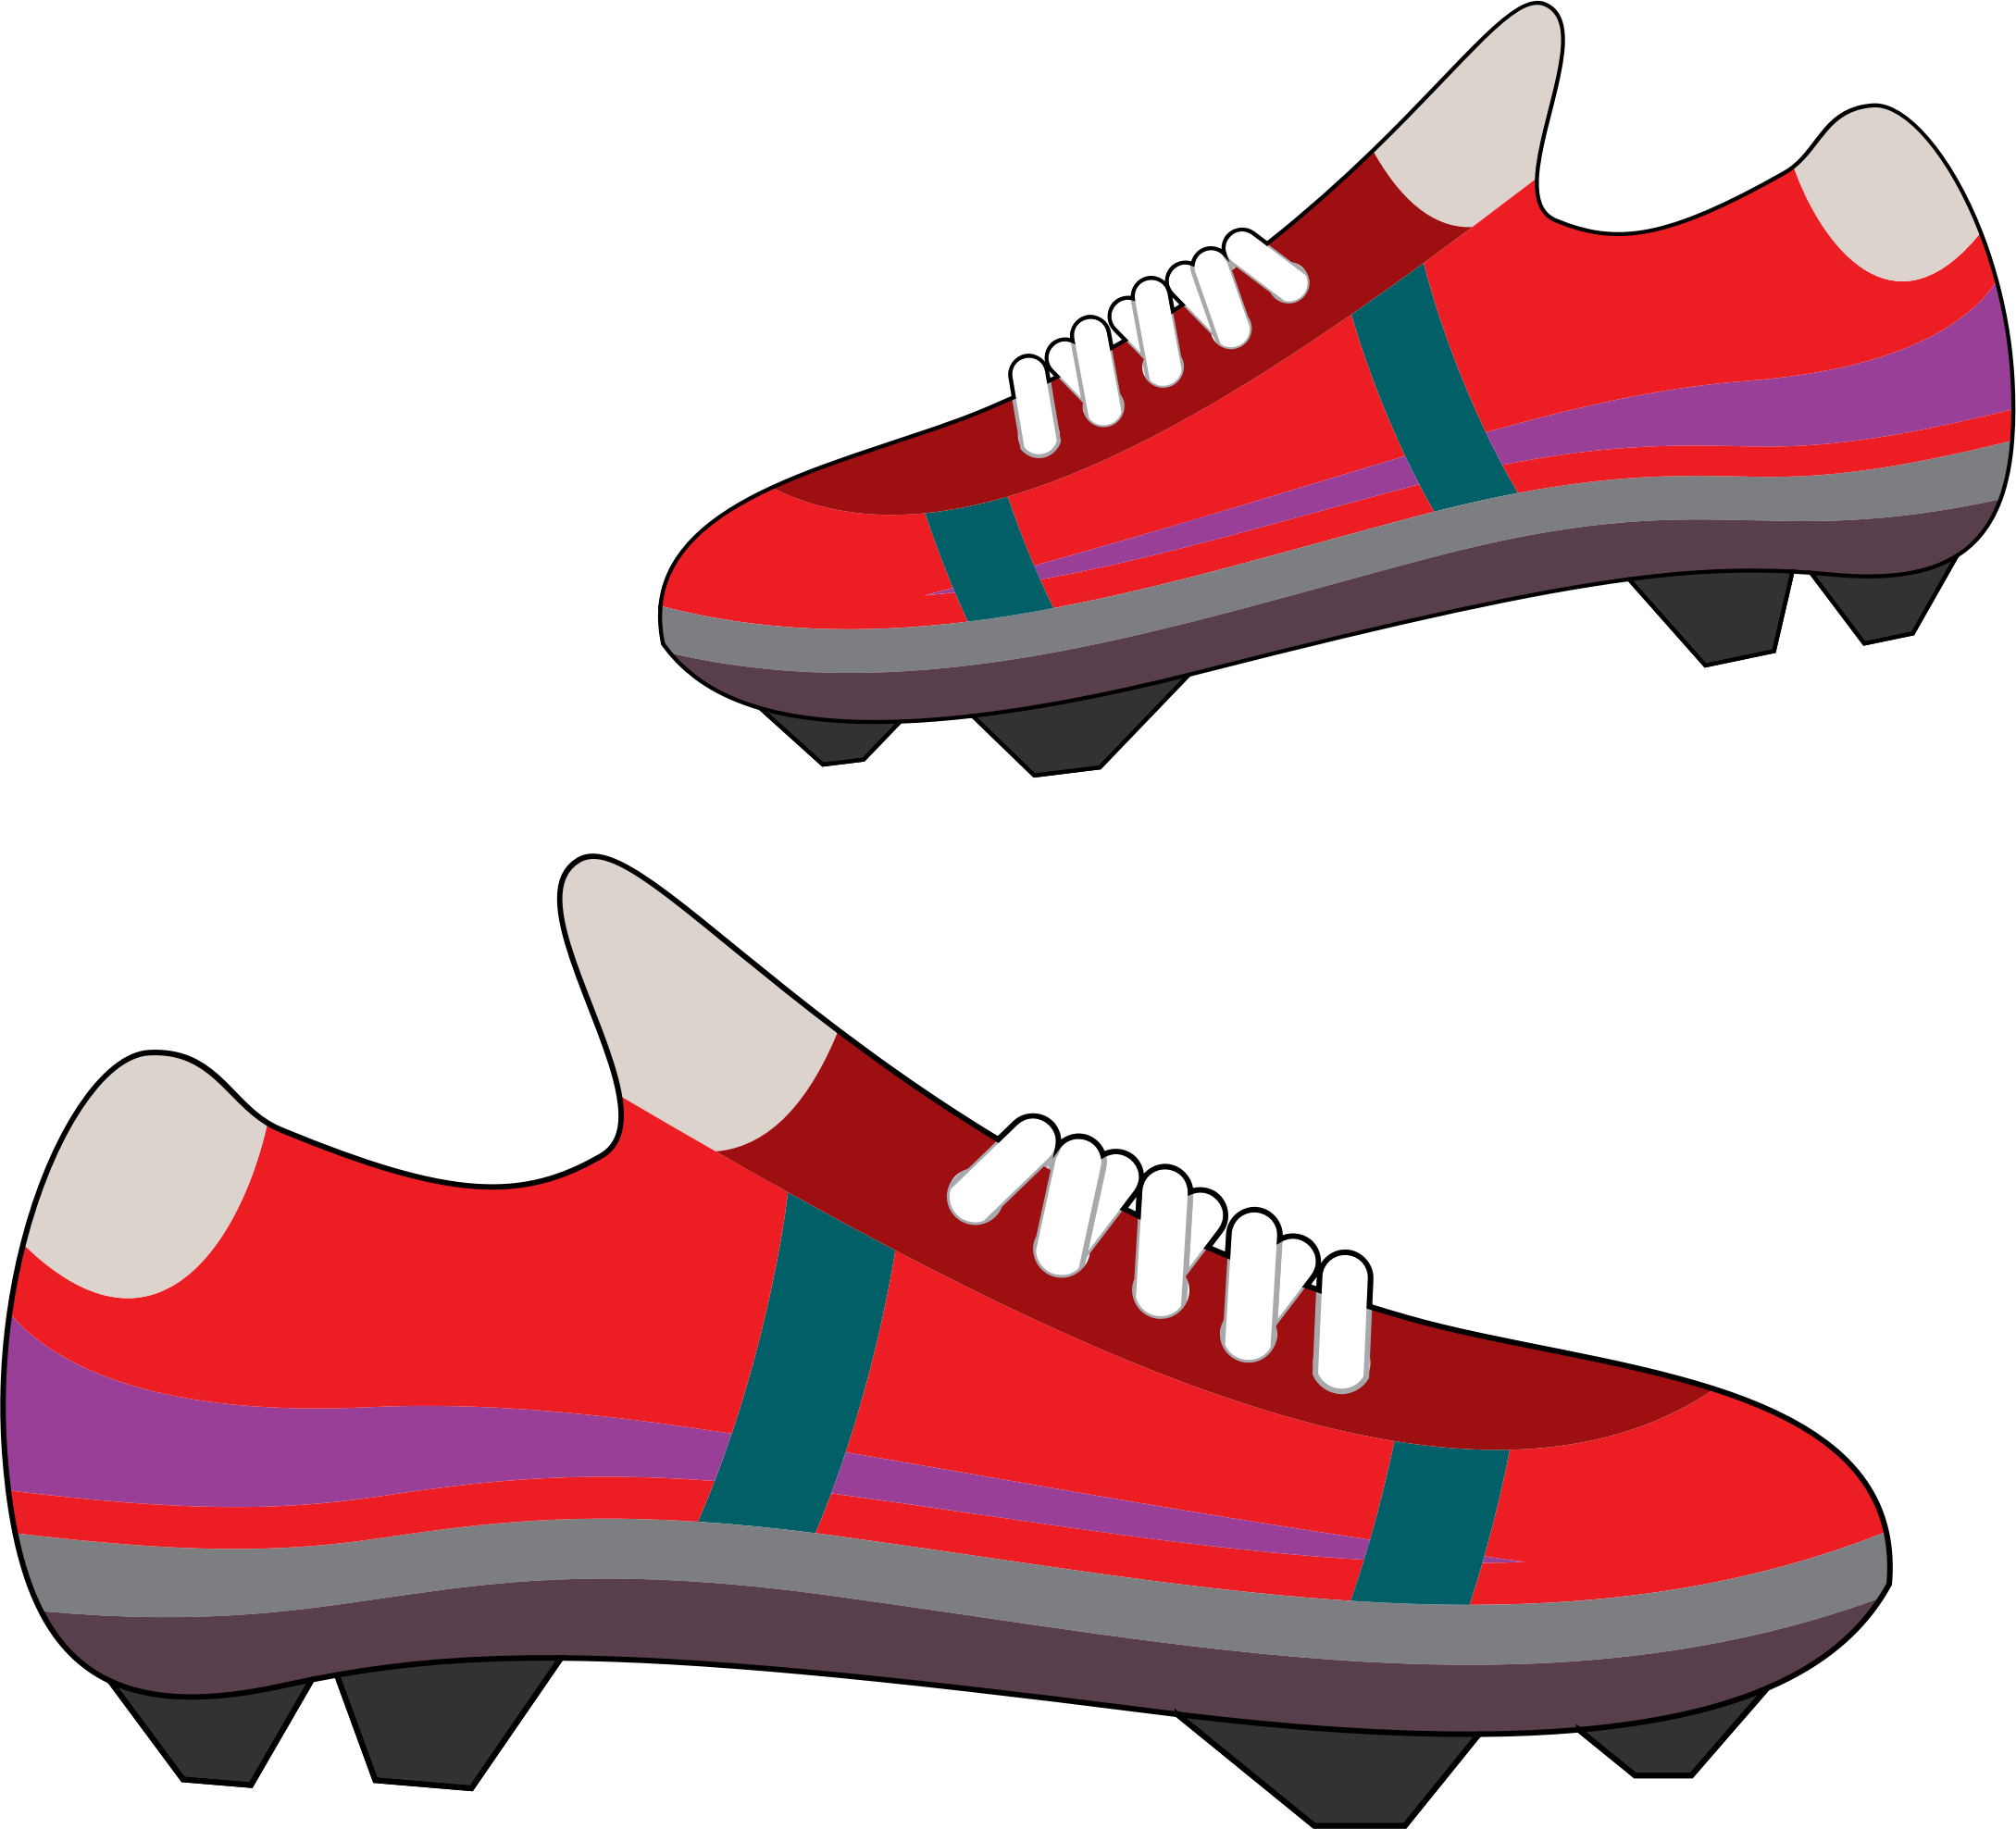 Clipart picture of a football picture royalty free library Clipart - Football Shoes picture royalty free library